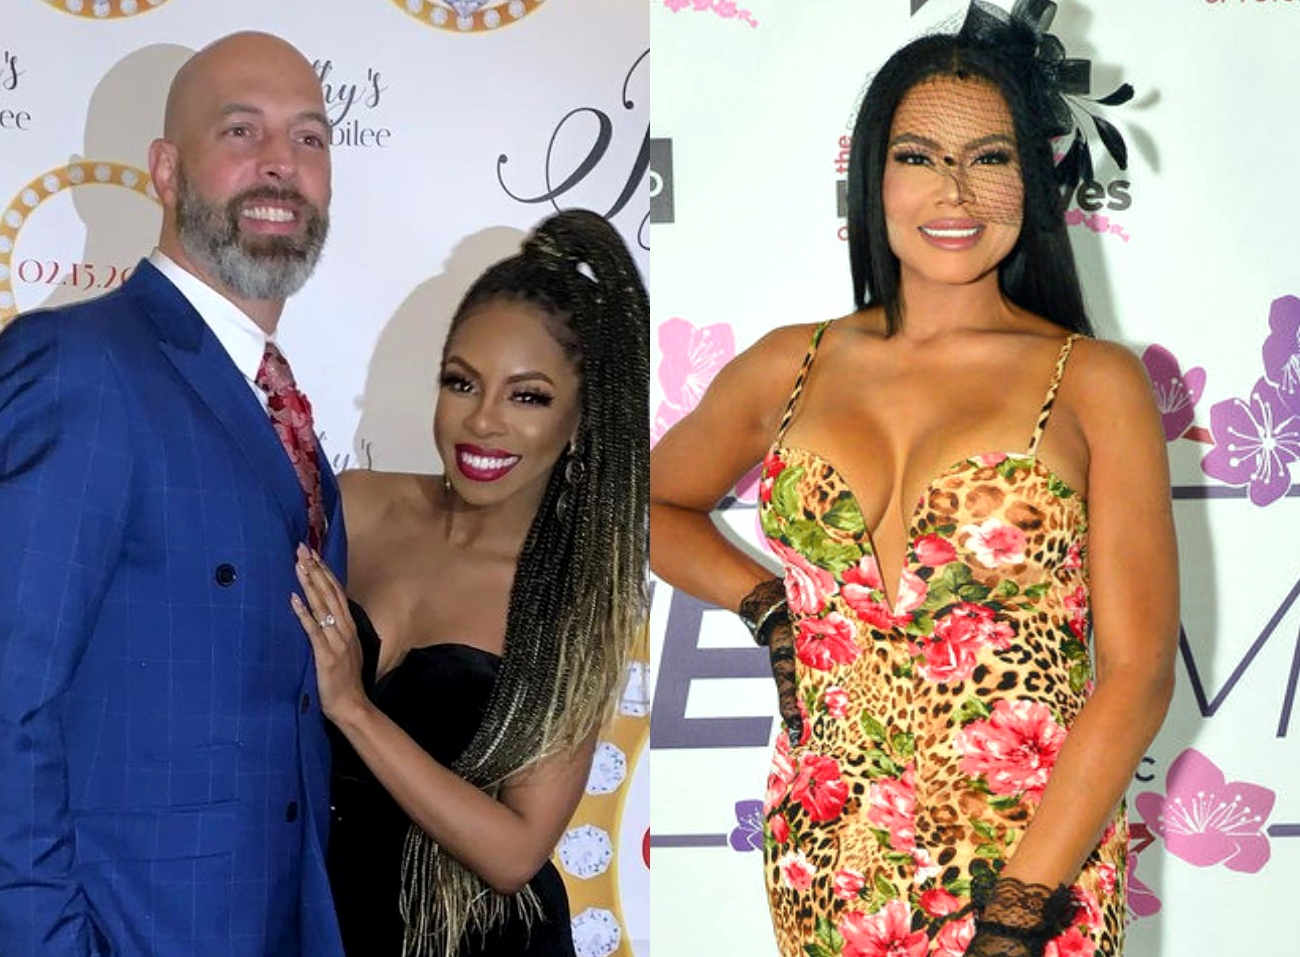 Mia Thornton Suggests Candiace Should Be Fired From RHOP After Candiace Slammed Her as a 'Handsome Bully,' Plus Mia Makes Sexually Suggestive Comment About Chris Bassett Amid Ugly Twitter War, See Chris' Response